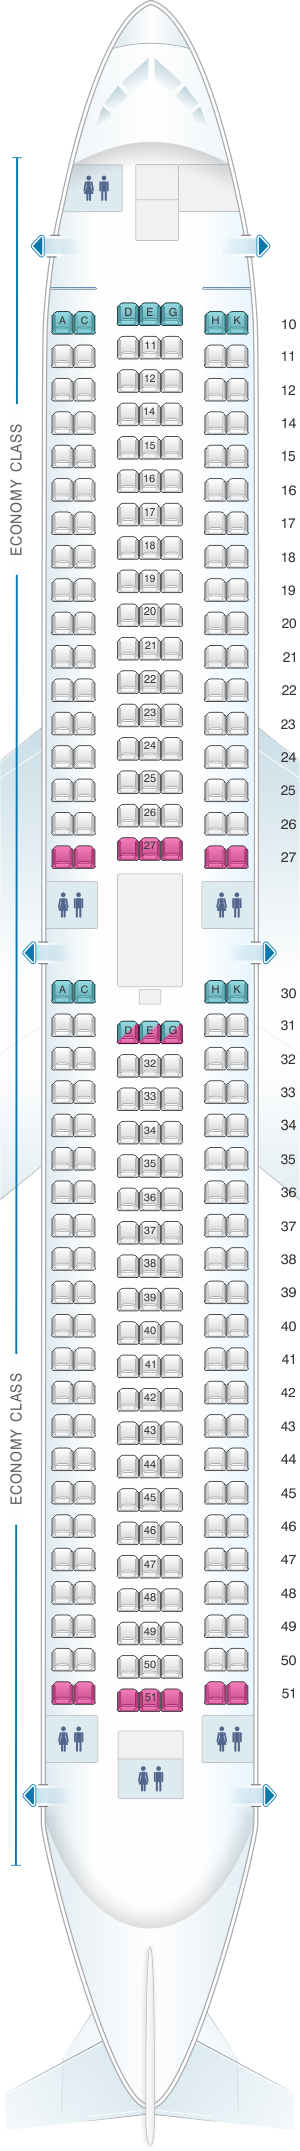 Seat map for Asiana Airlines Boeing B767 300 270PAX